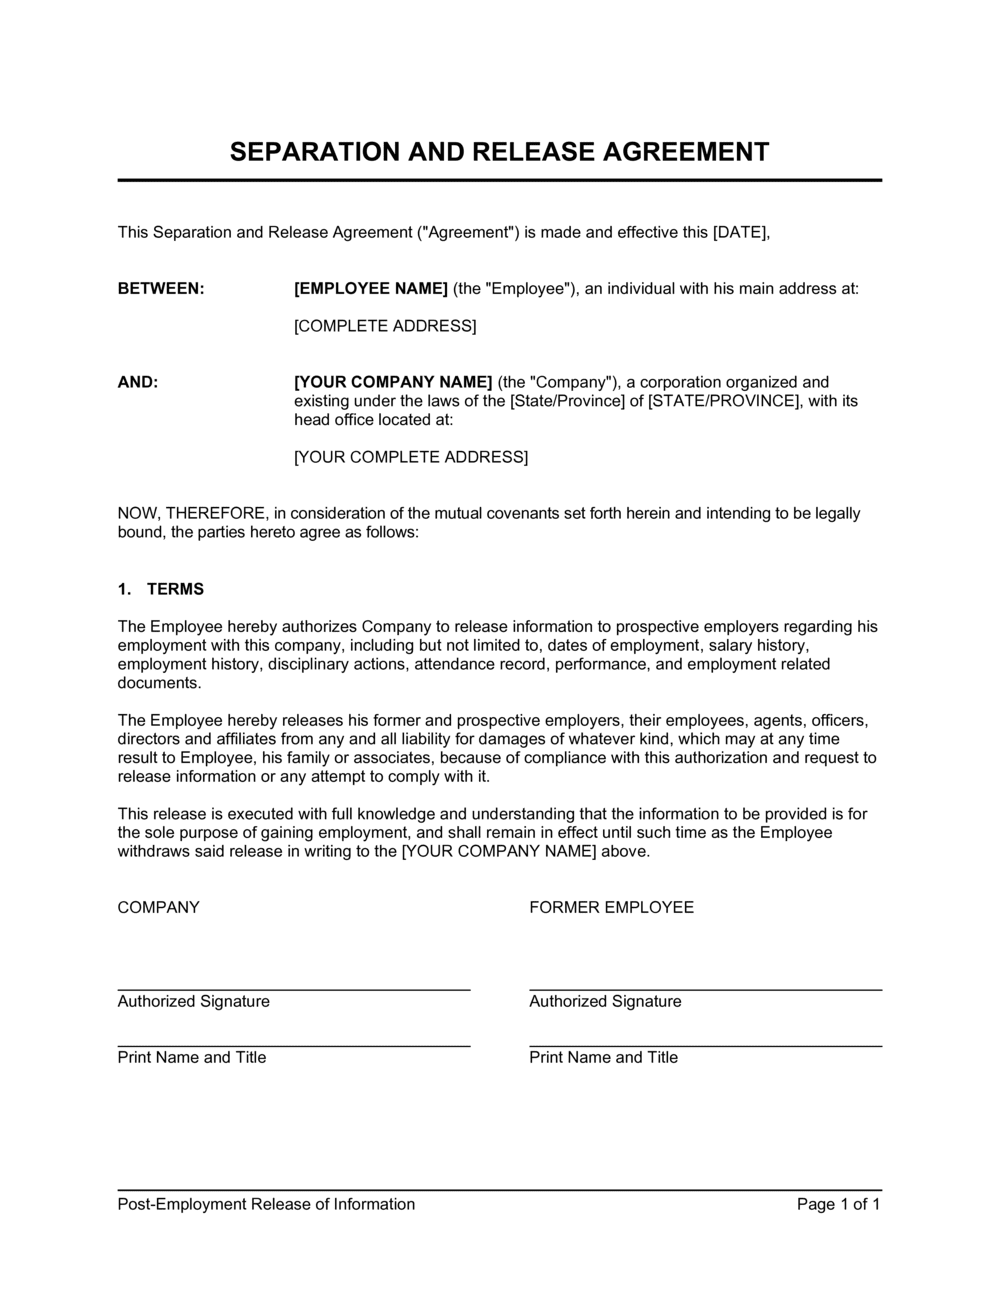 Business-in-a-Box's Post-Employment Information Release Agreement Template